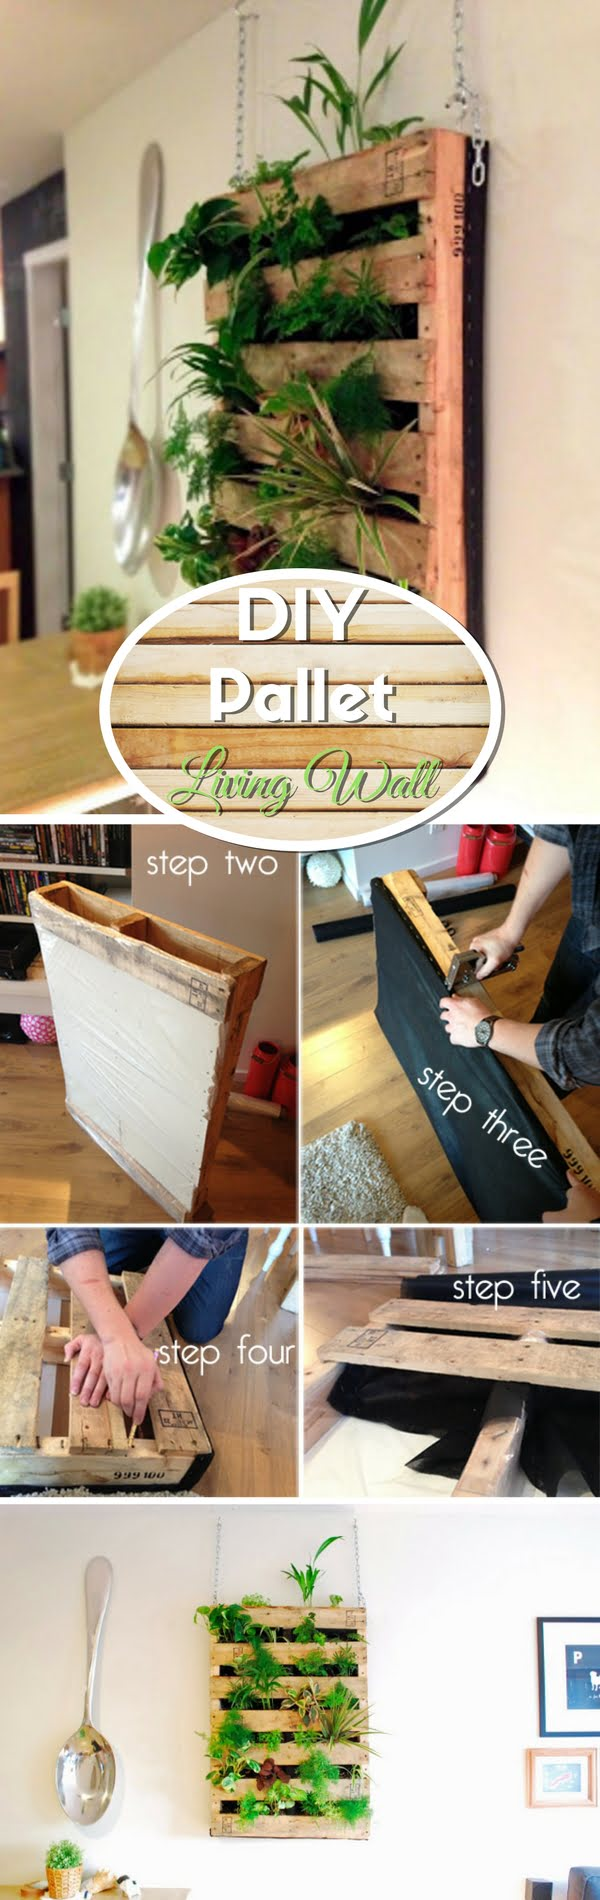 Check out how to make an easy DIY pallet living wall